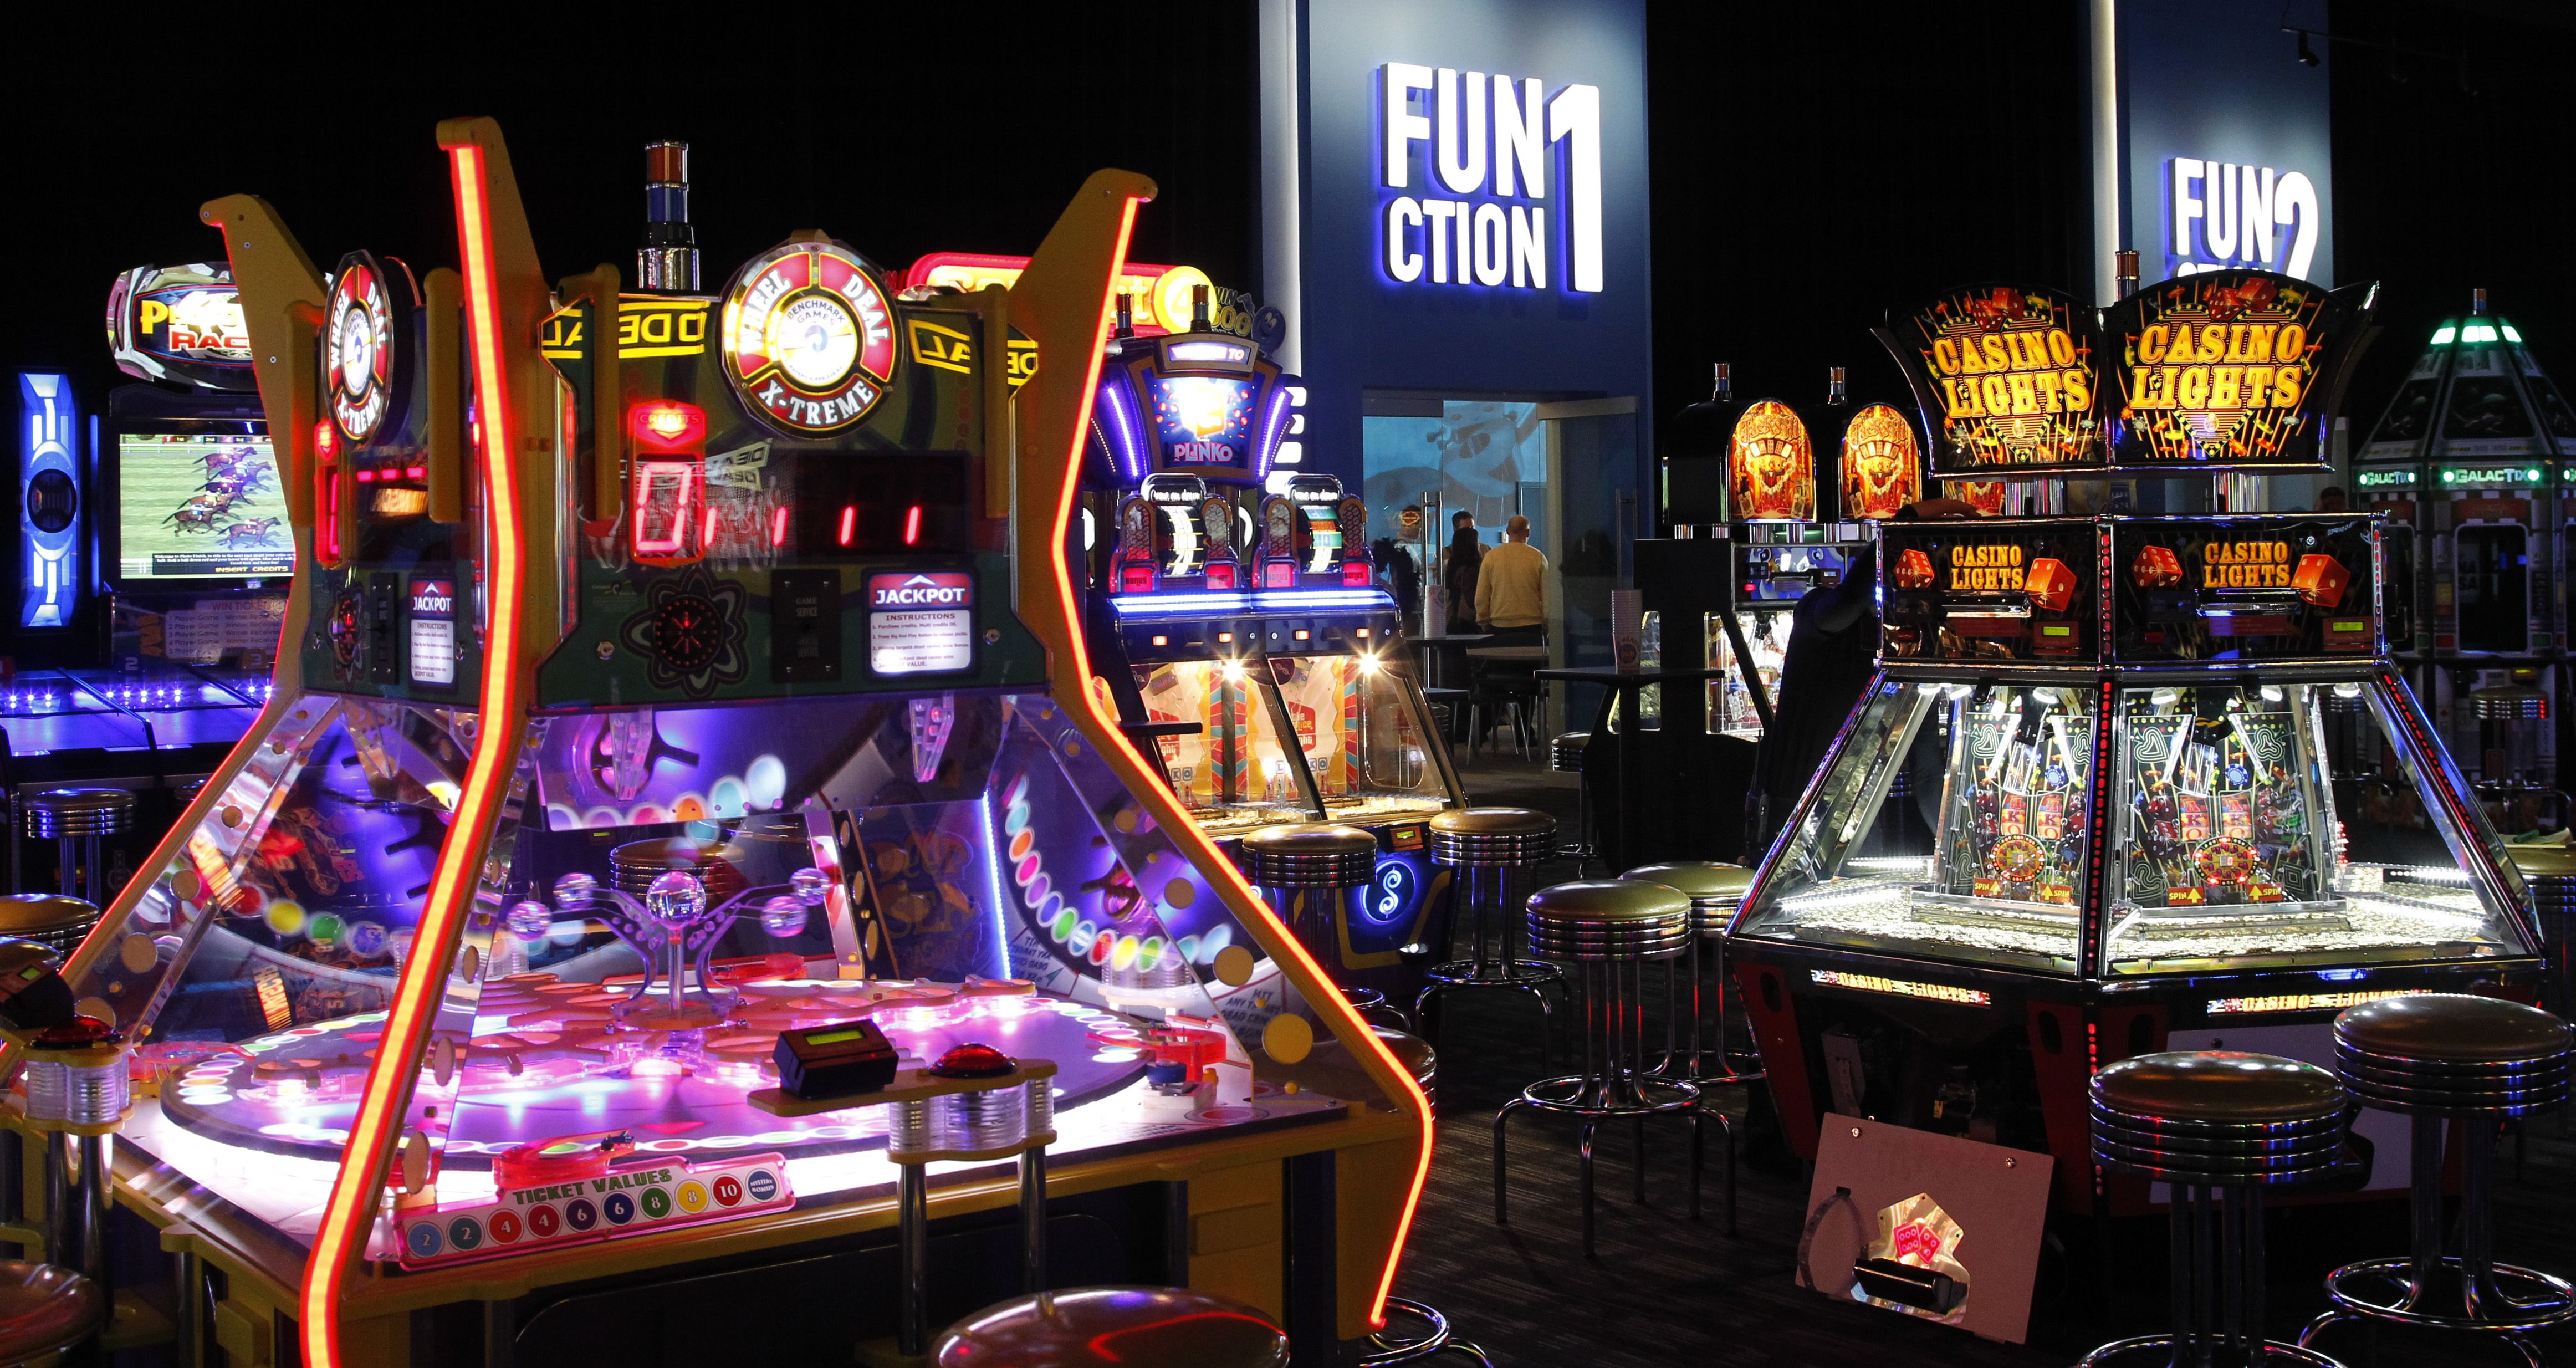 Dave and busters printable coupons january 2013 - Sizing Up The New Dave Buster S In Dallas A More Open